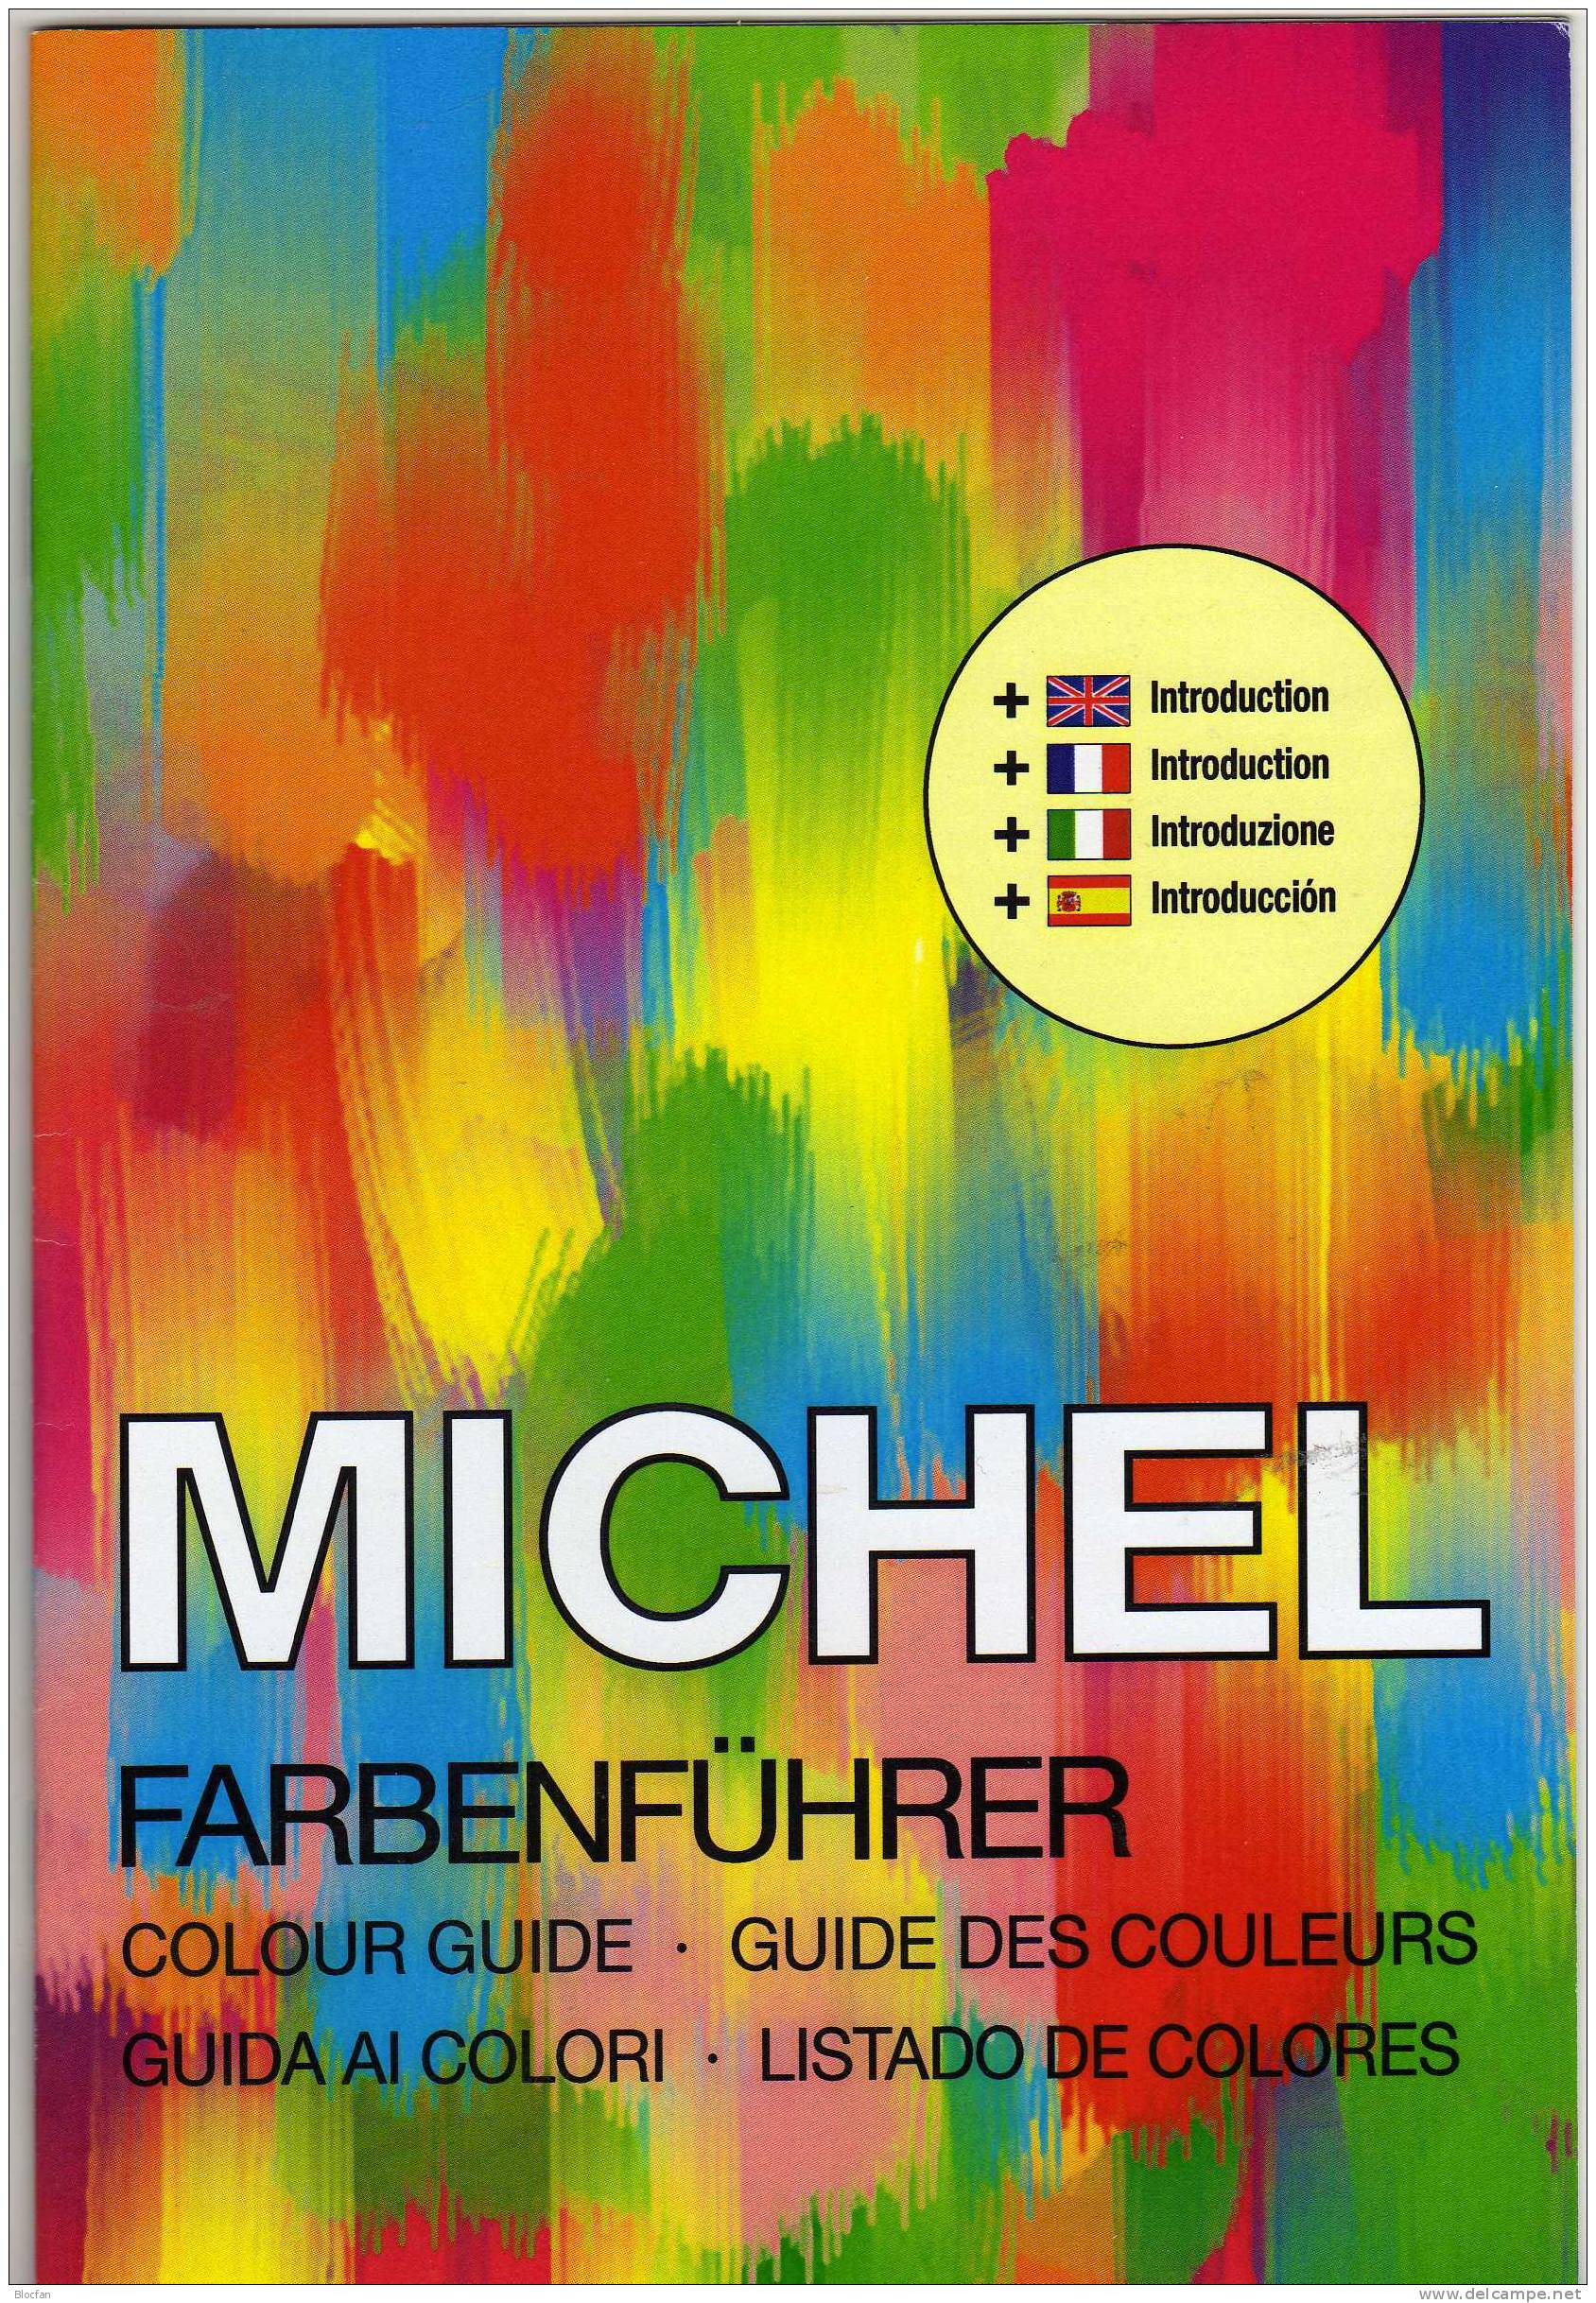 MICHEL Farbenführer 2011 In English Motivation New 89€ Profi-tips And Stamps Collect Informations Catalogueguide Germany - Engels